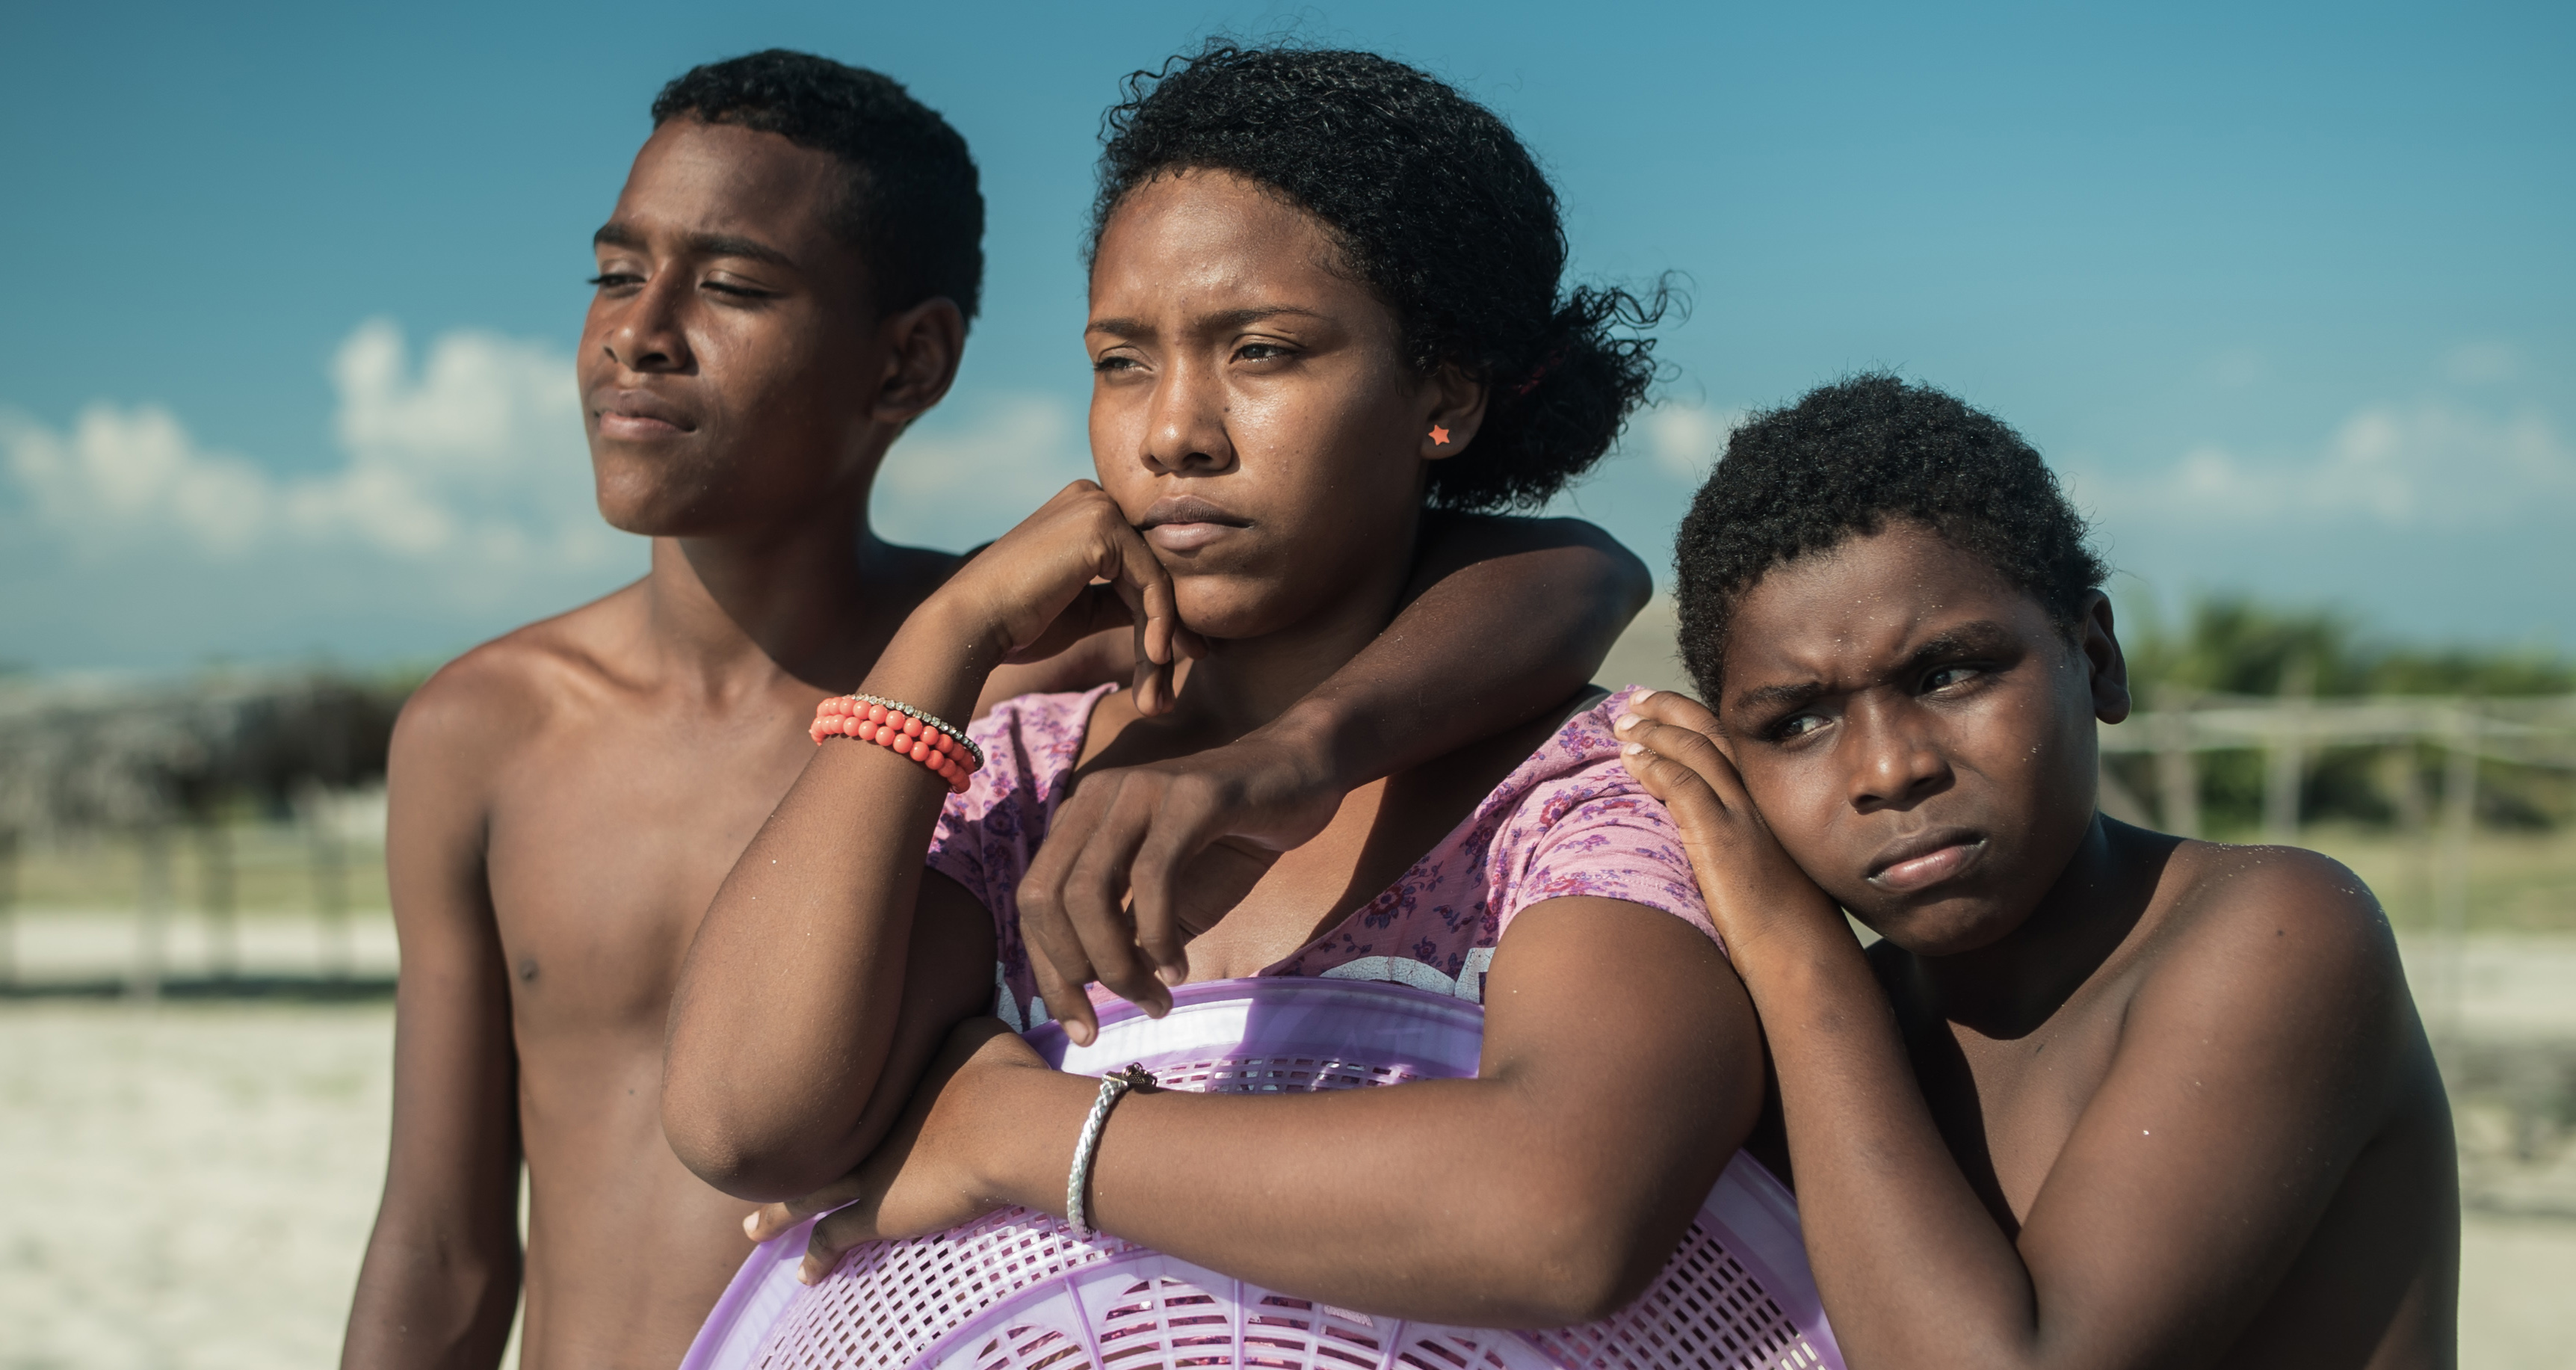 TRAILER: 'La Negrada' Is Mexico's First-Ever Fiction Film to Have an All-Black Cast